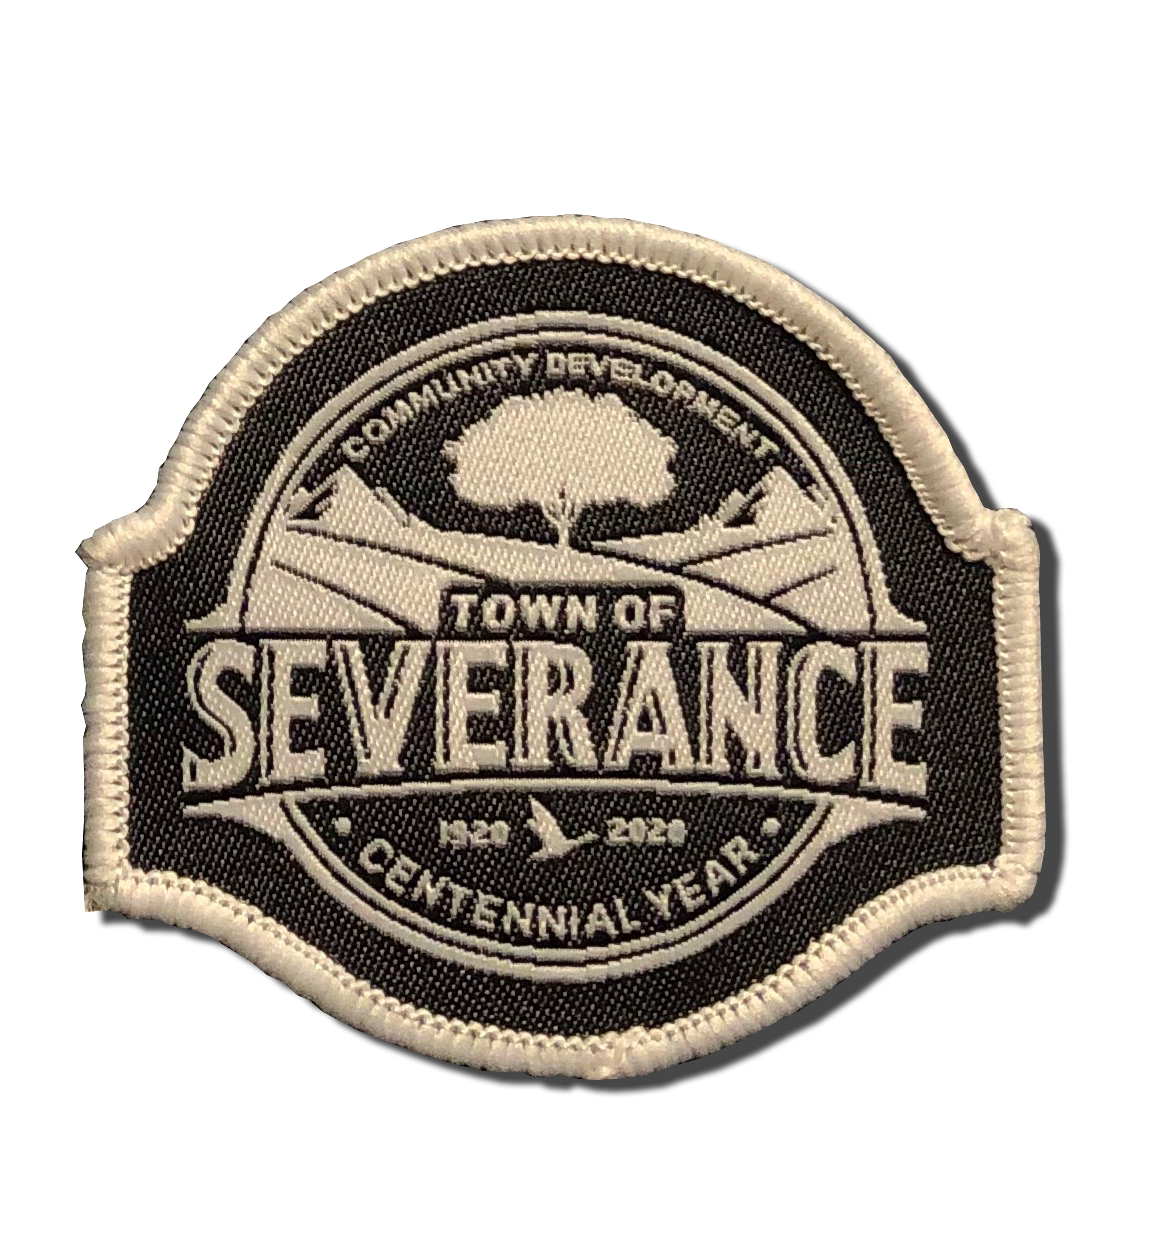 Town of Severance Patch. A-B Emblem Photo Gallery image.